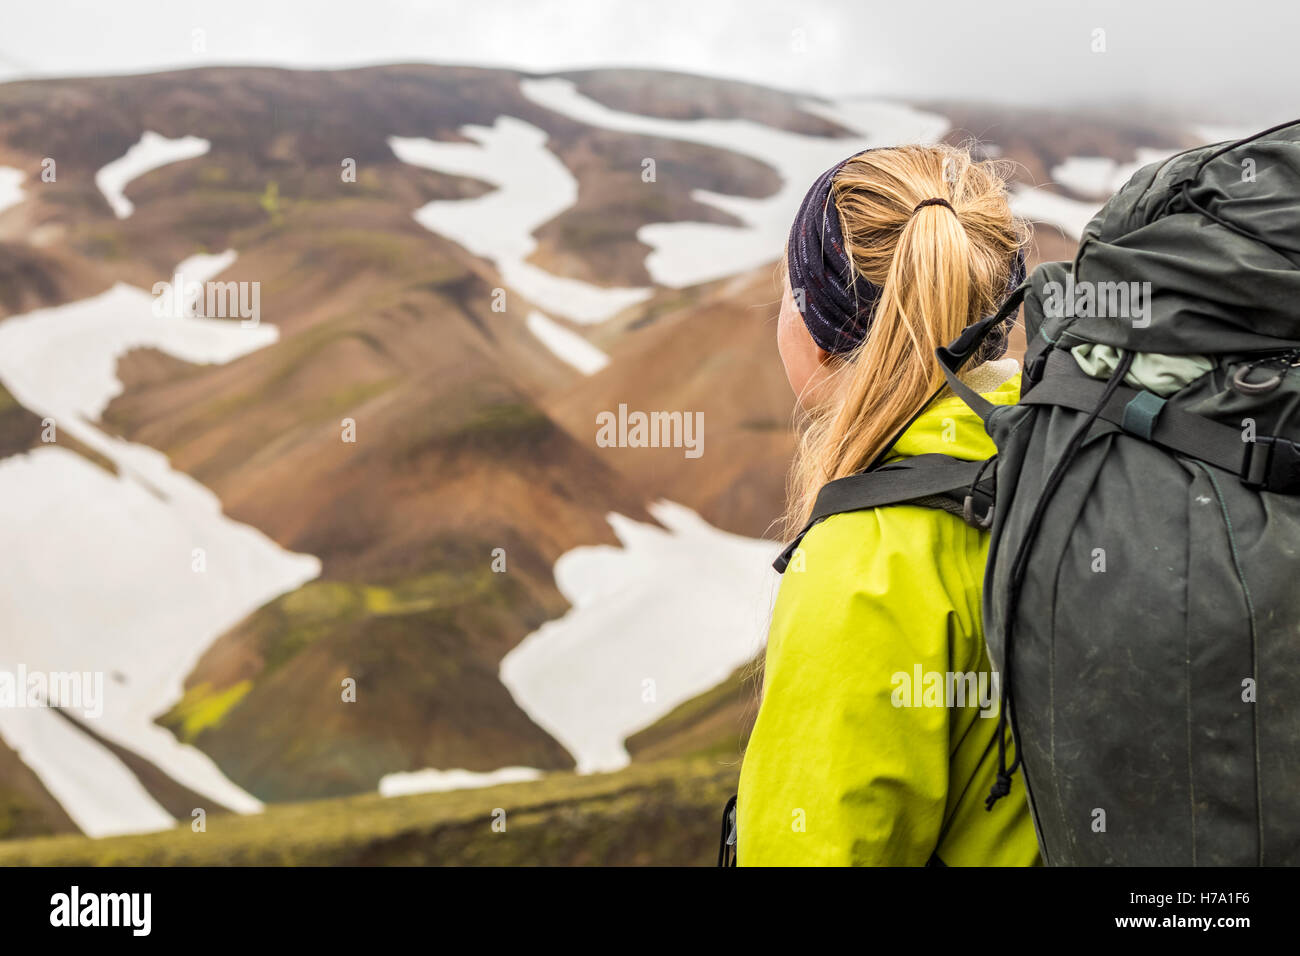 A young hiker overlooking the mountains in Landmannlaugar. - Stock Image